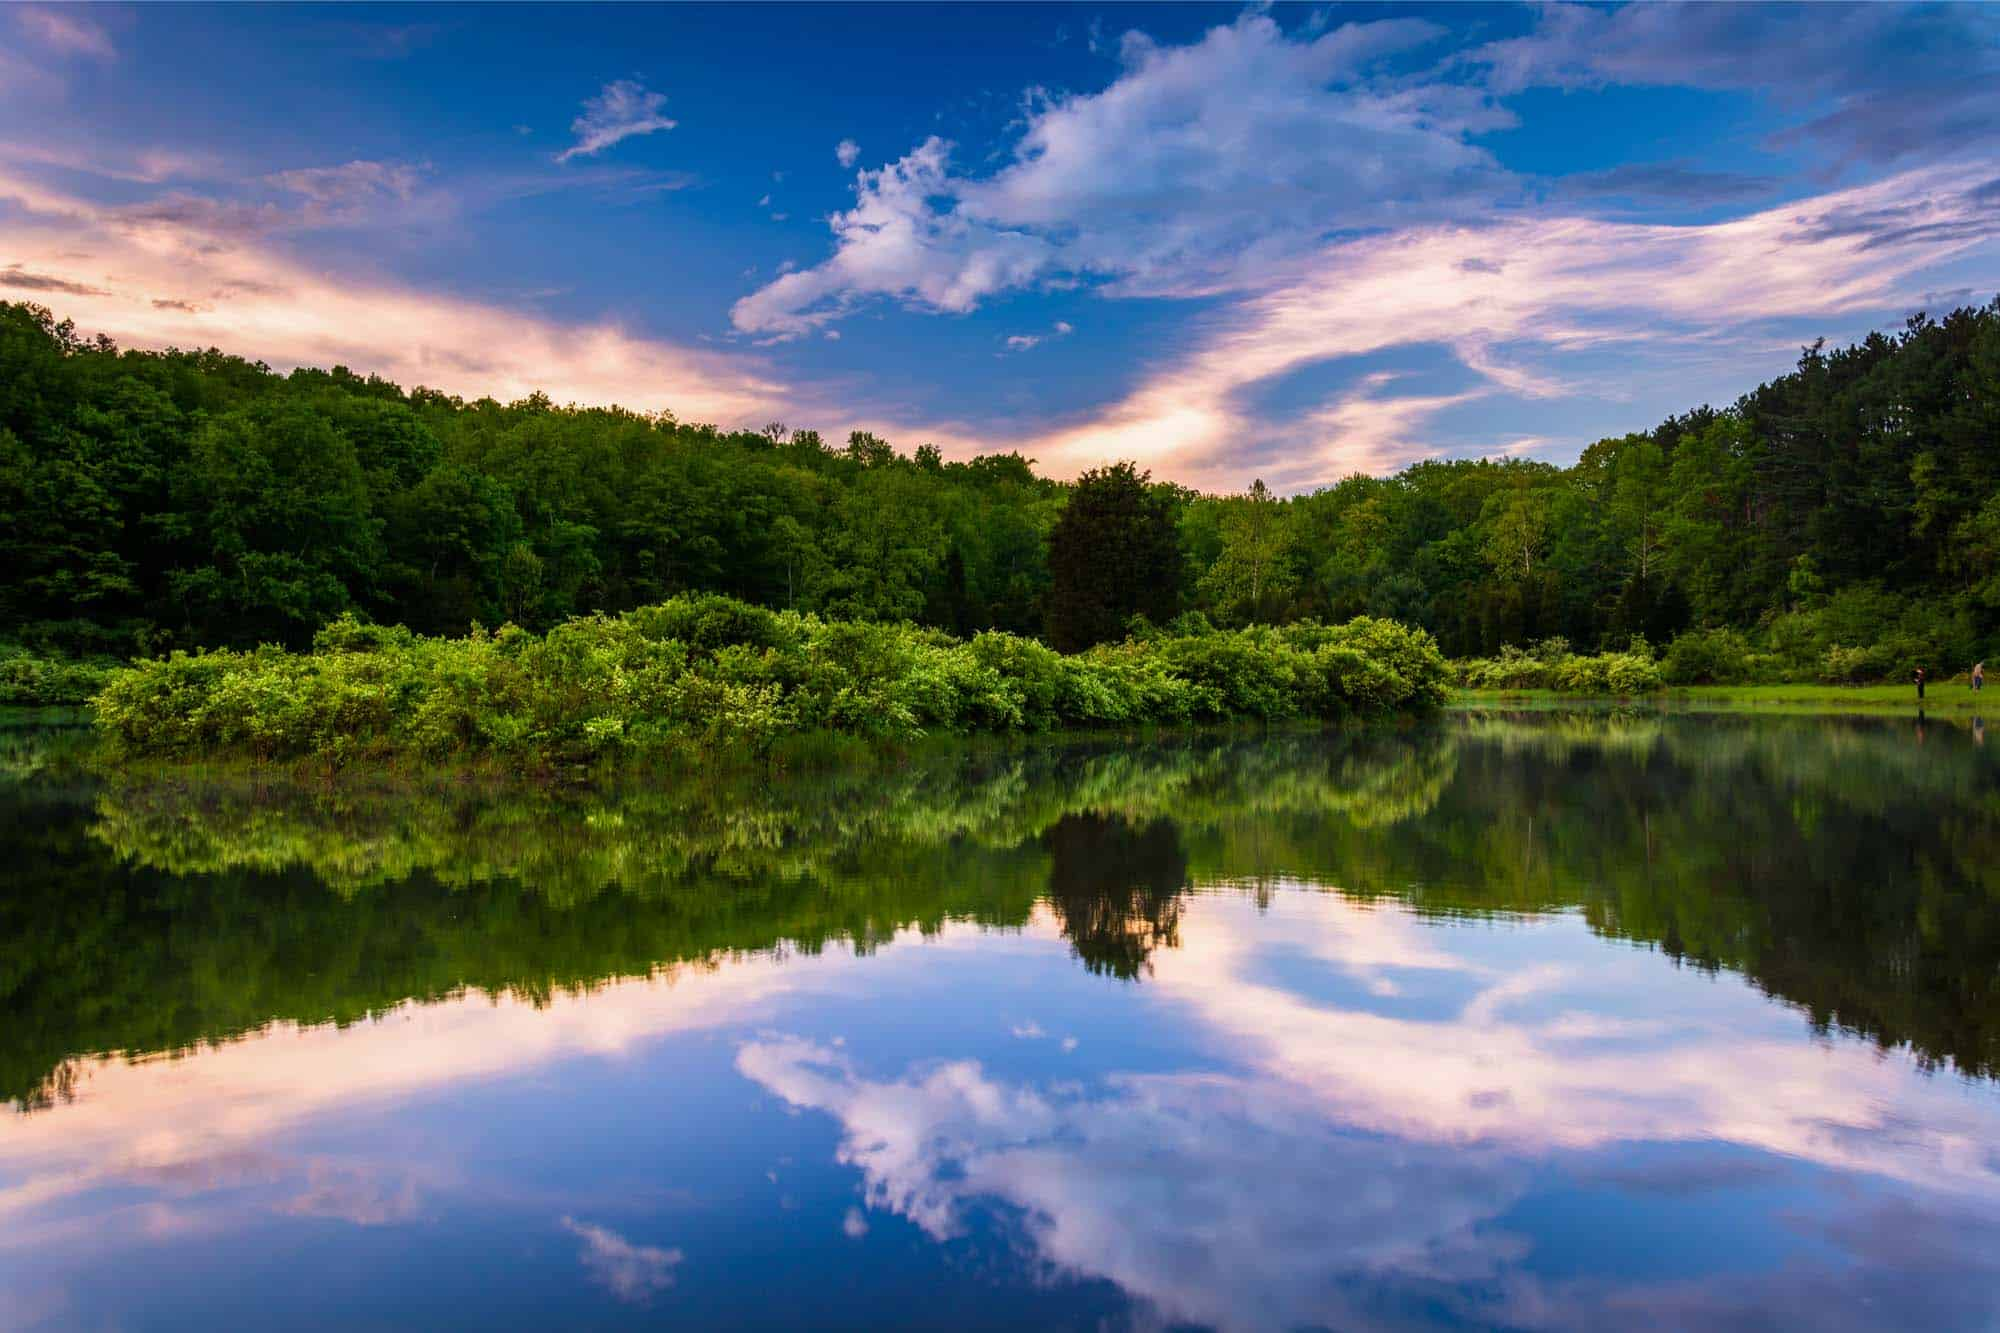 Colorful sky reflected in lake with green trees